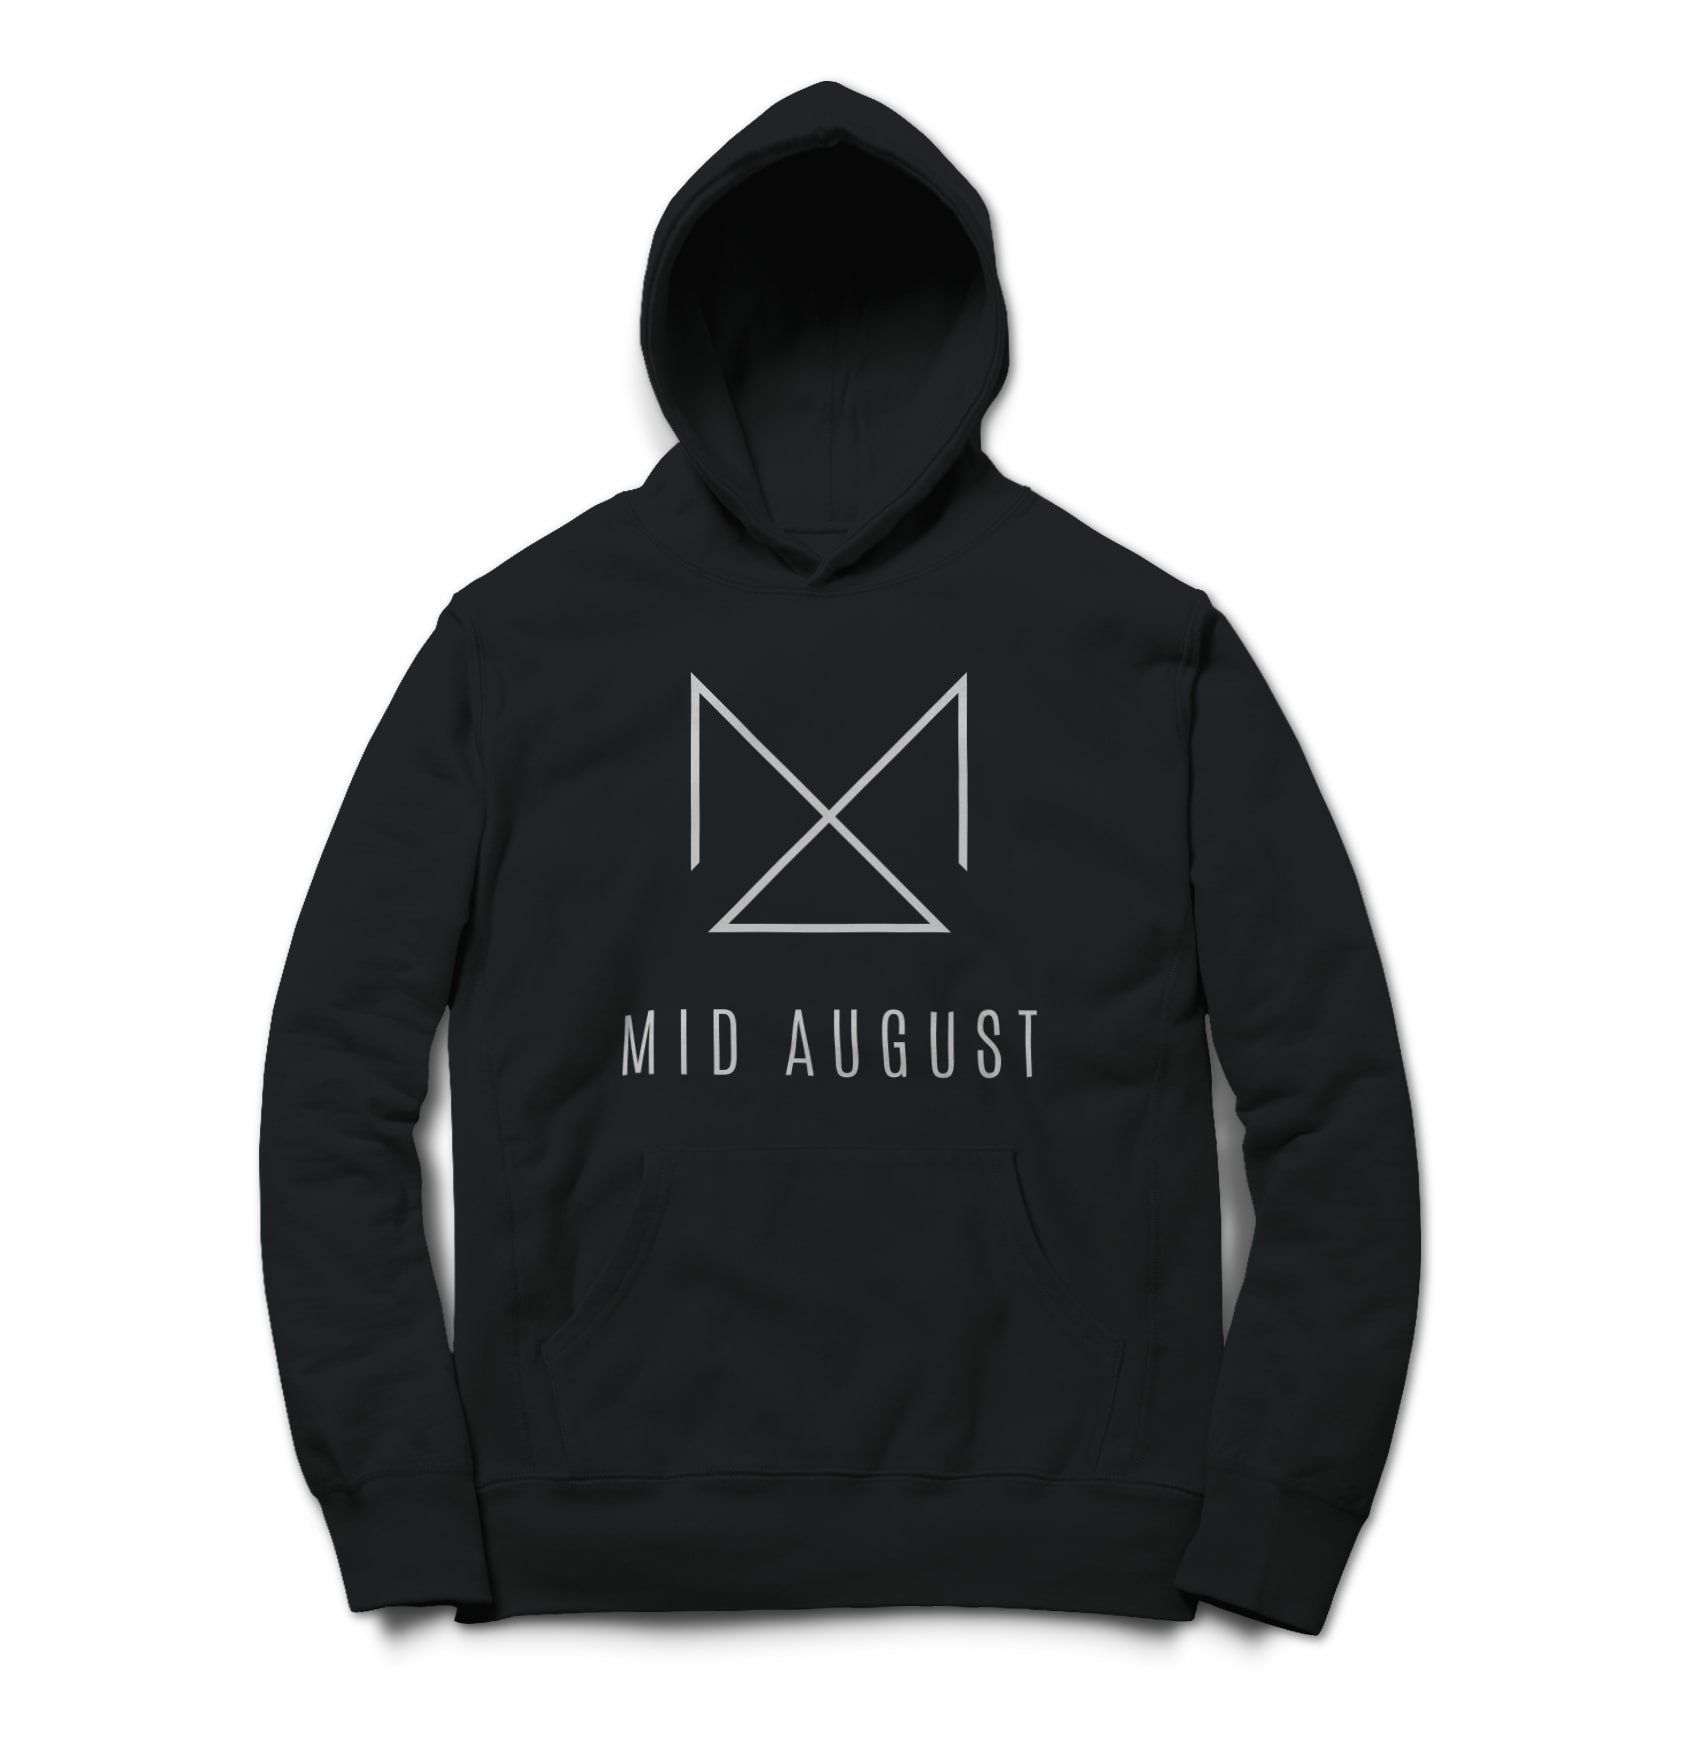 Mid august mid august logo 1492705889